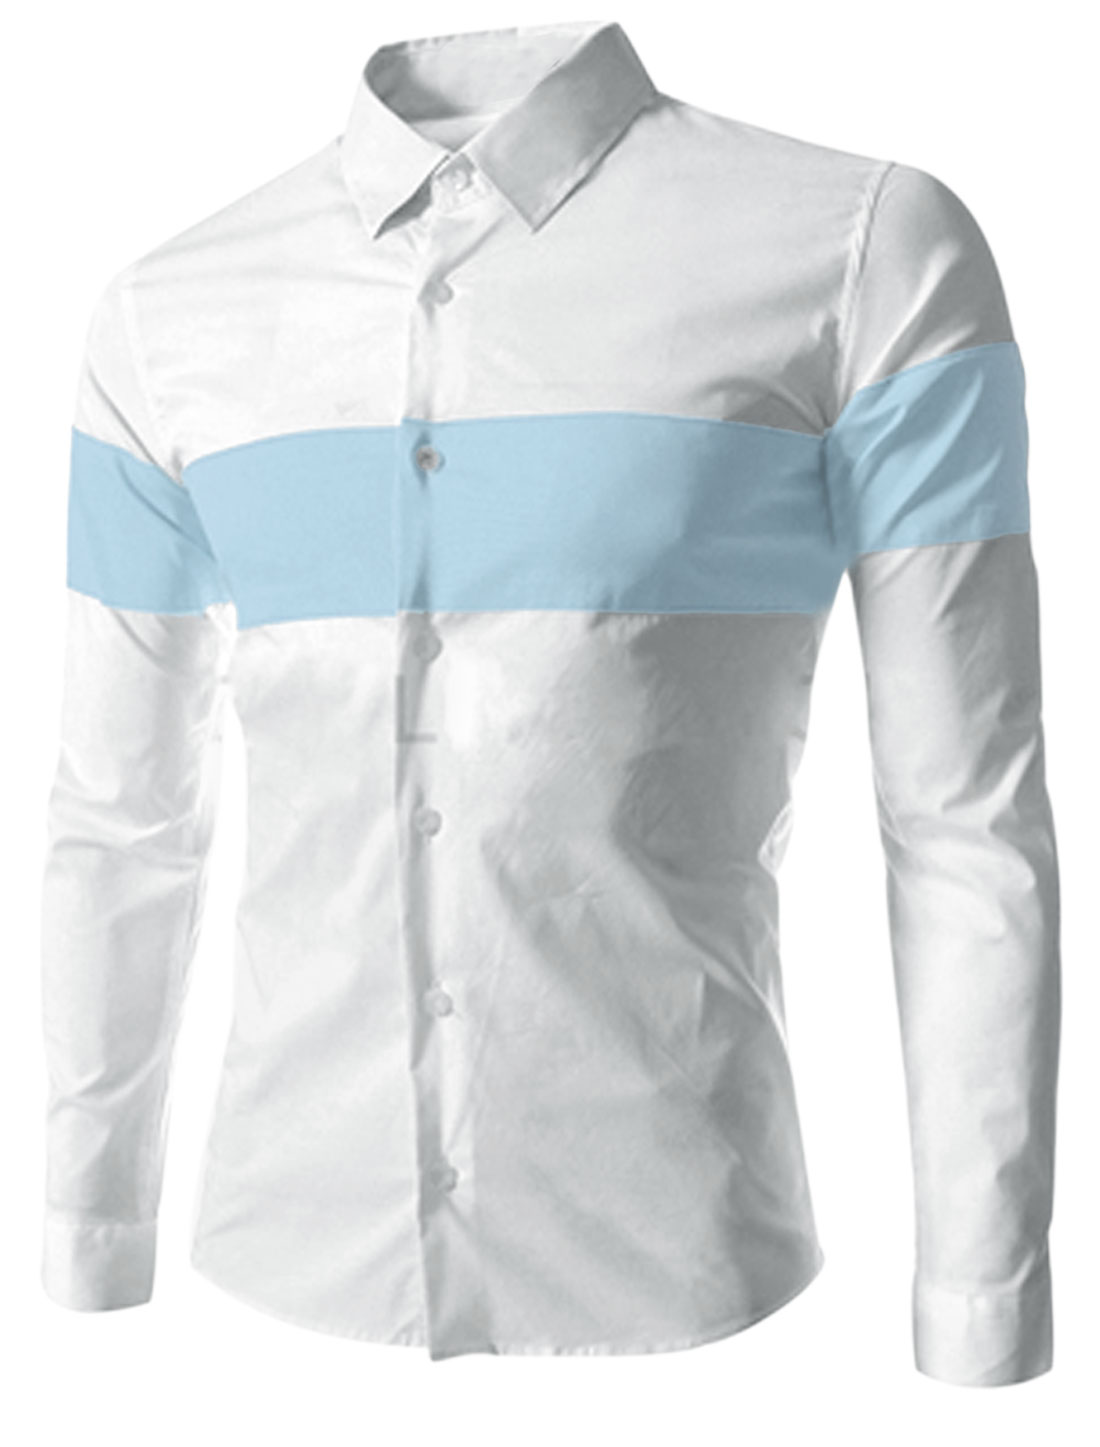 Men Buttoned Cuffs Contrast Color Leisure Top Shirt Baby Blue White M